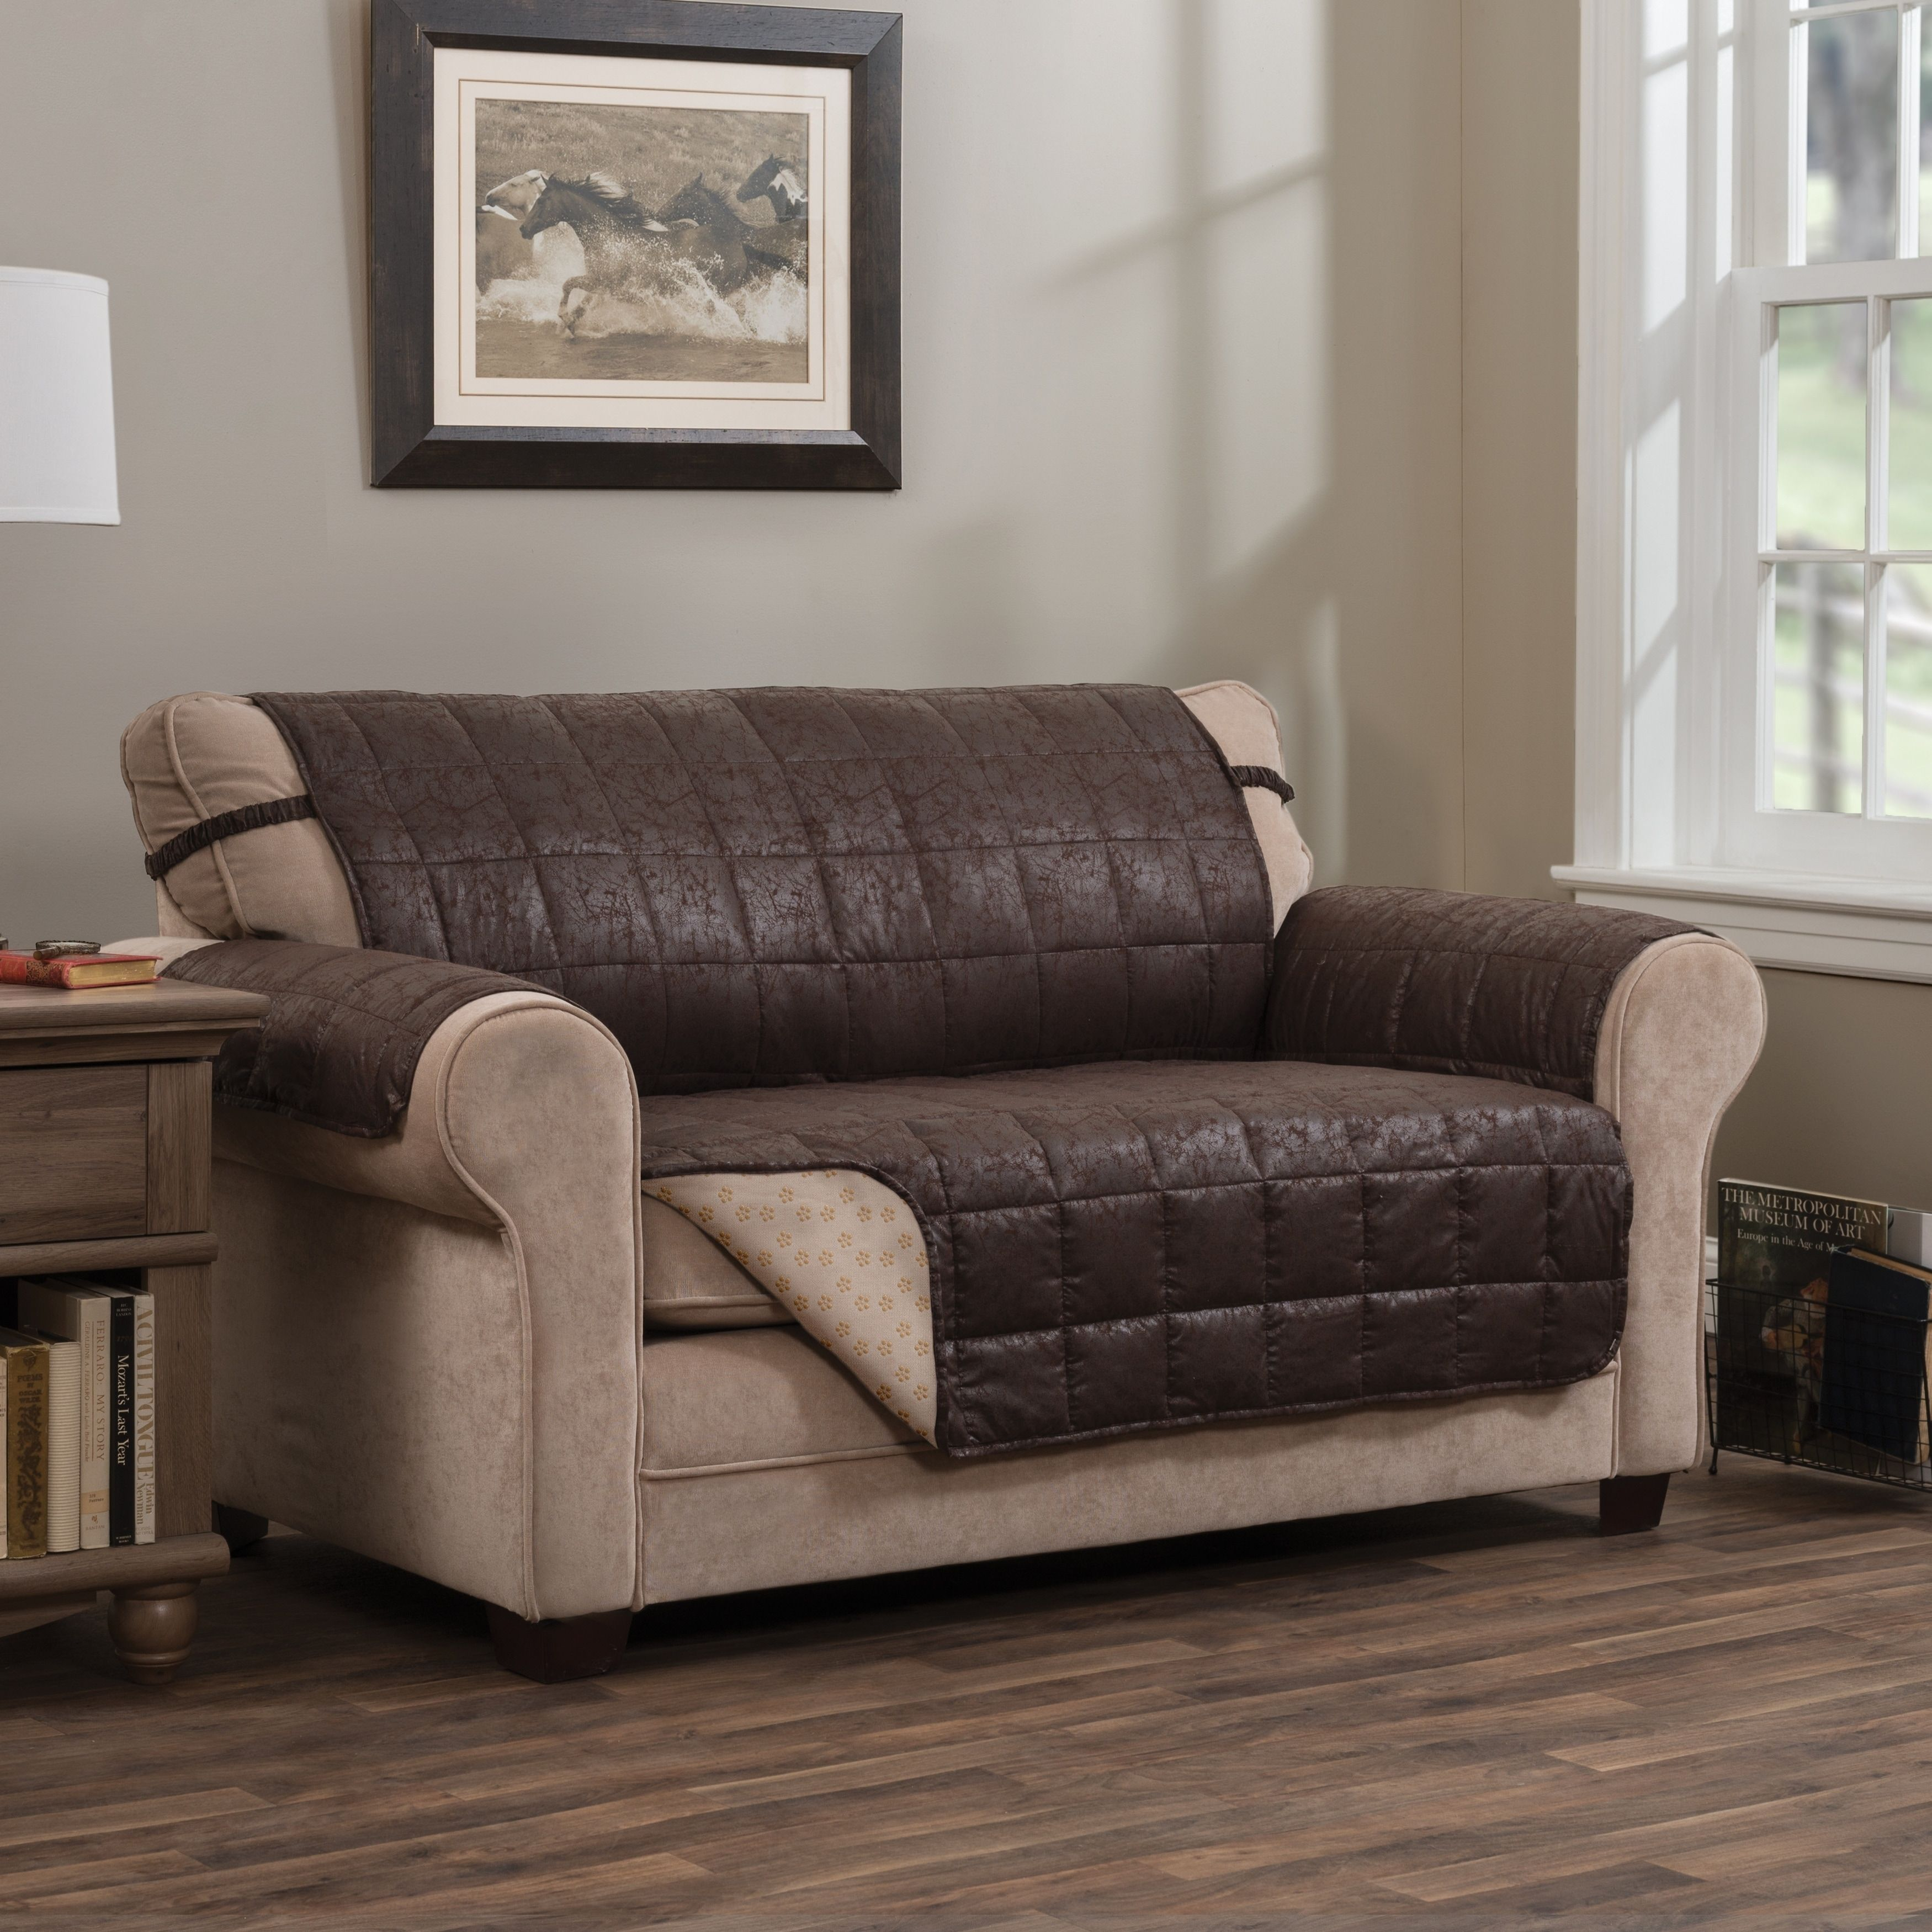 Faux Leather Sofa In A Box Innovative Textile Solutions Brentwood Faux Leather Xl Sofa